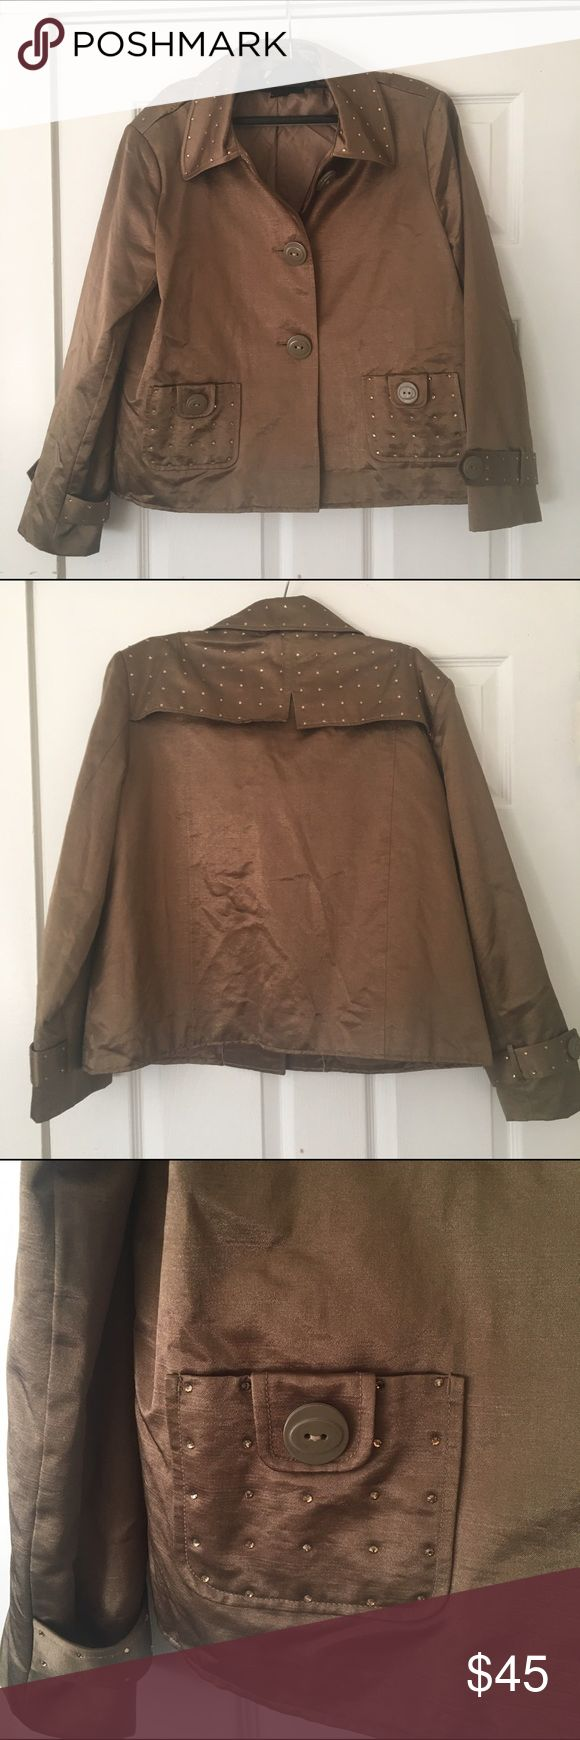 Christine Alexander Swarovski element jacket Christine Alexander Swarovski element crystal embroidered jacket size medium. More of an olive/army green type color than looks in photo. Christine Alexander  Jackets & Coats